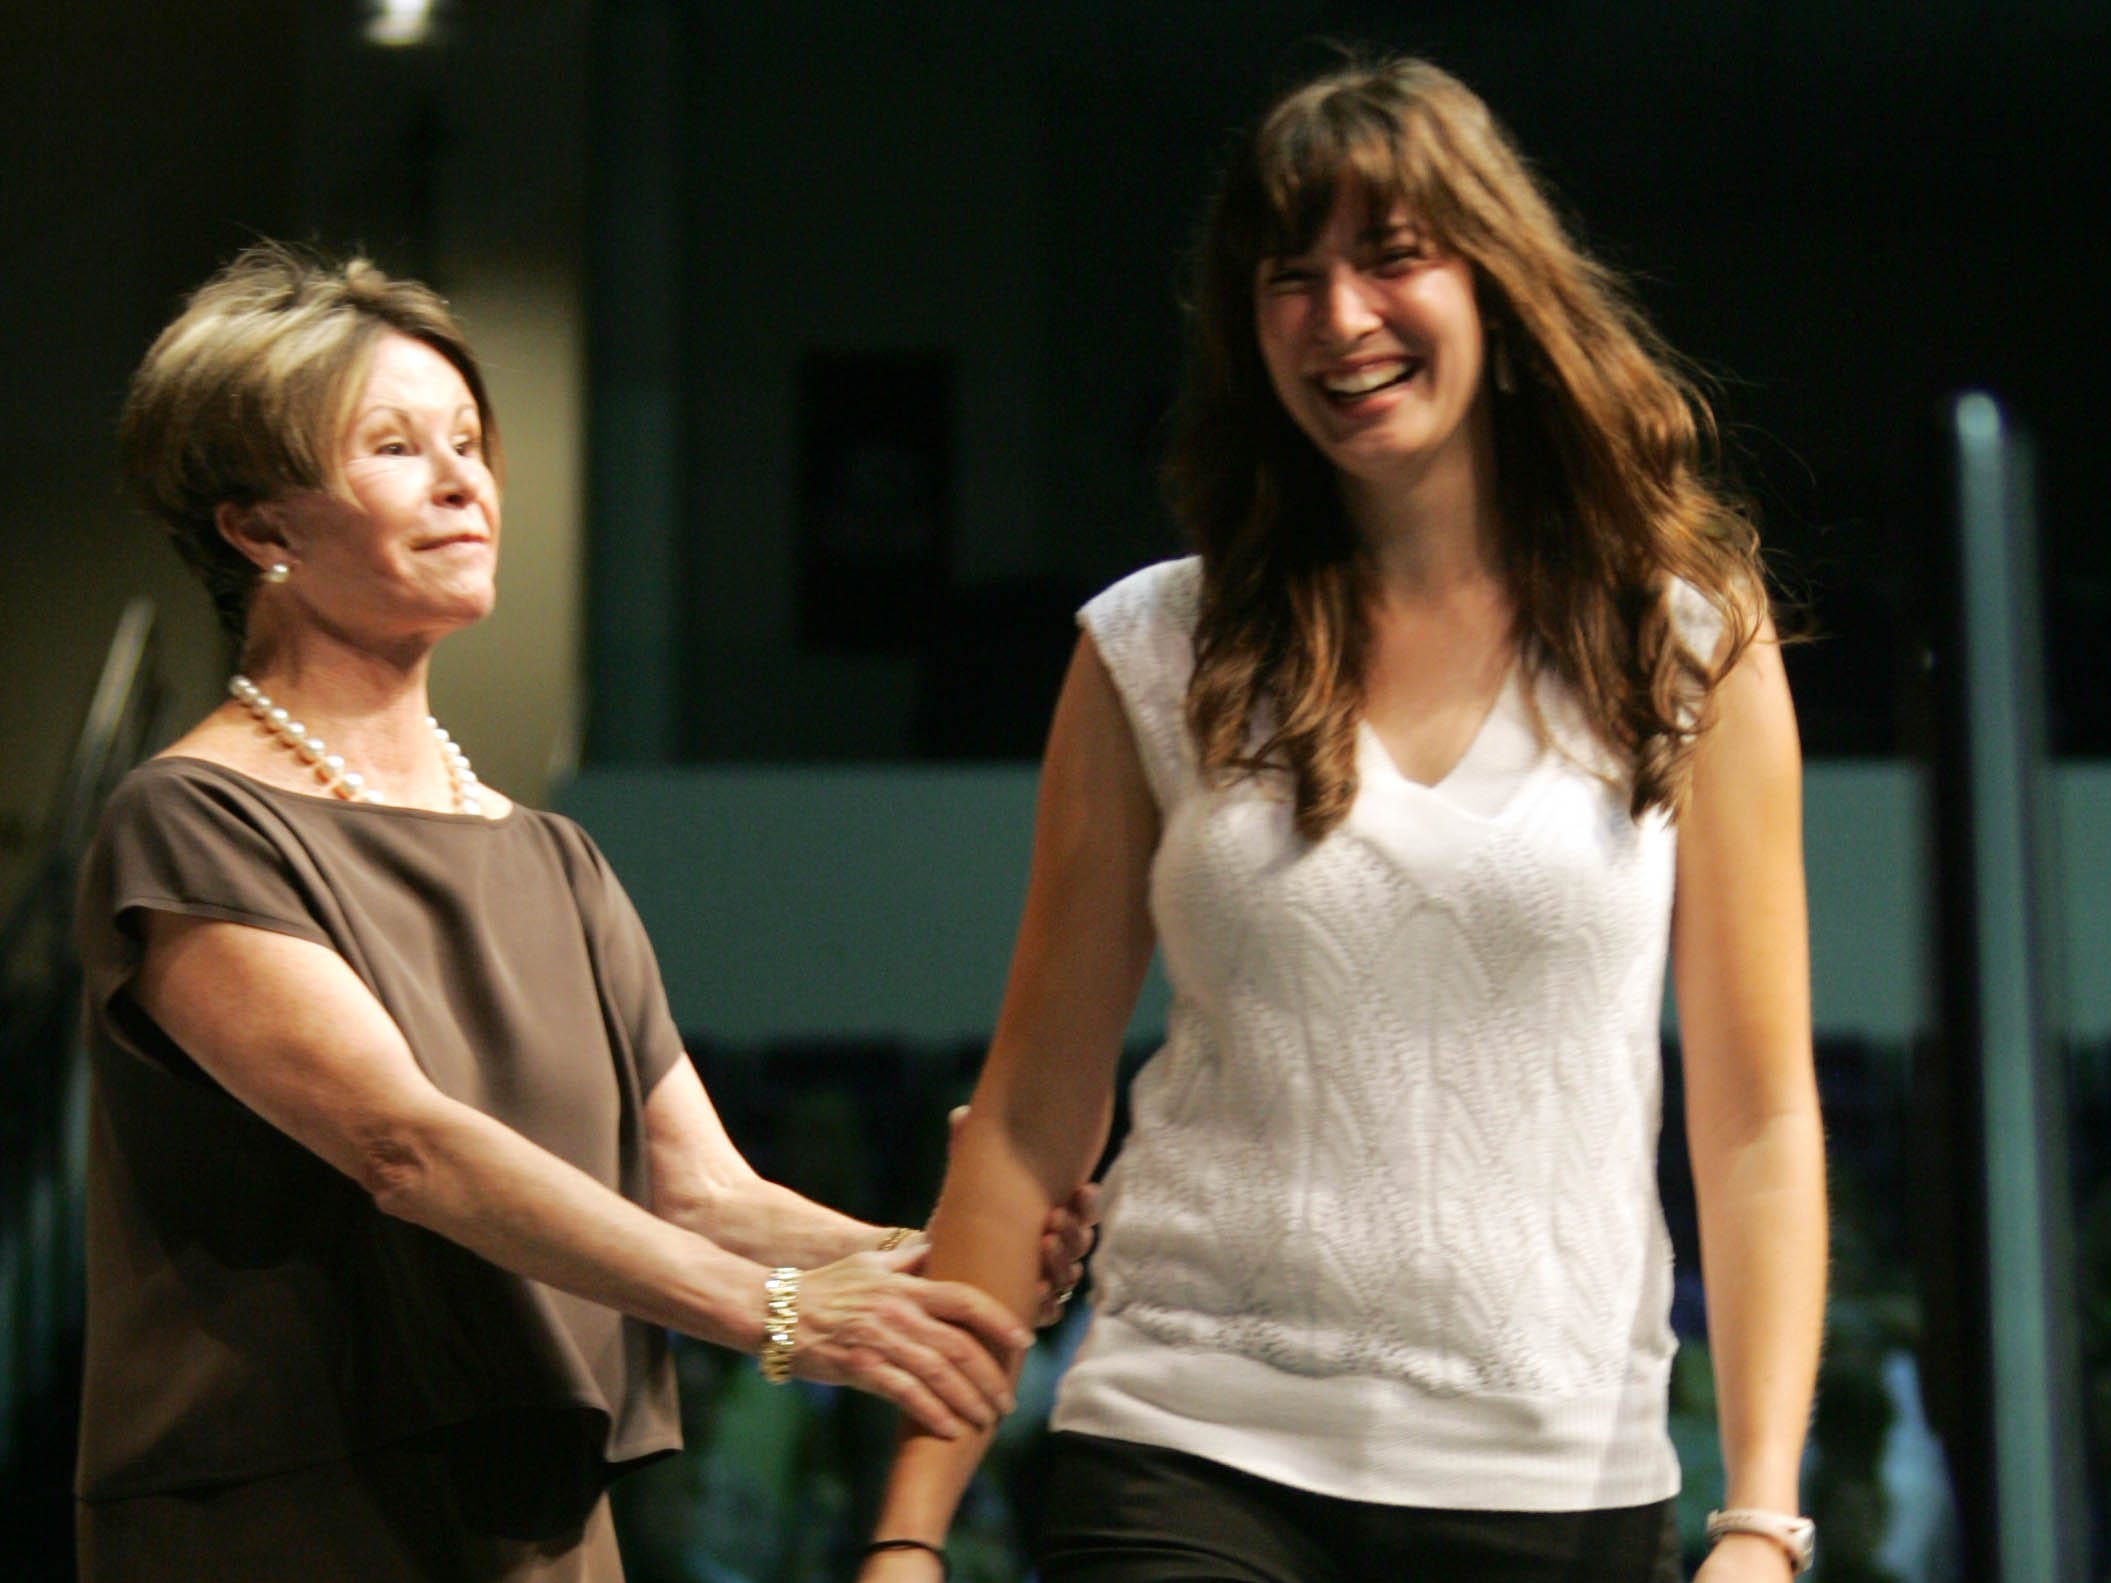 Vanderbilt University School of Nursing Dean and Professor Colleen Conway-Welch, left, congratulates student Amy Morton as she walks across the stage during Vanderbilt University School of Nursing's pinning ceremony at Belmont University's Curb Event Center in Nashville, Tenn., Sunday, August 5, 2007.